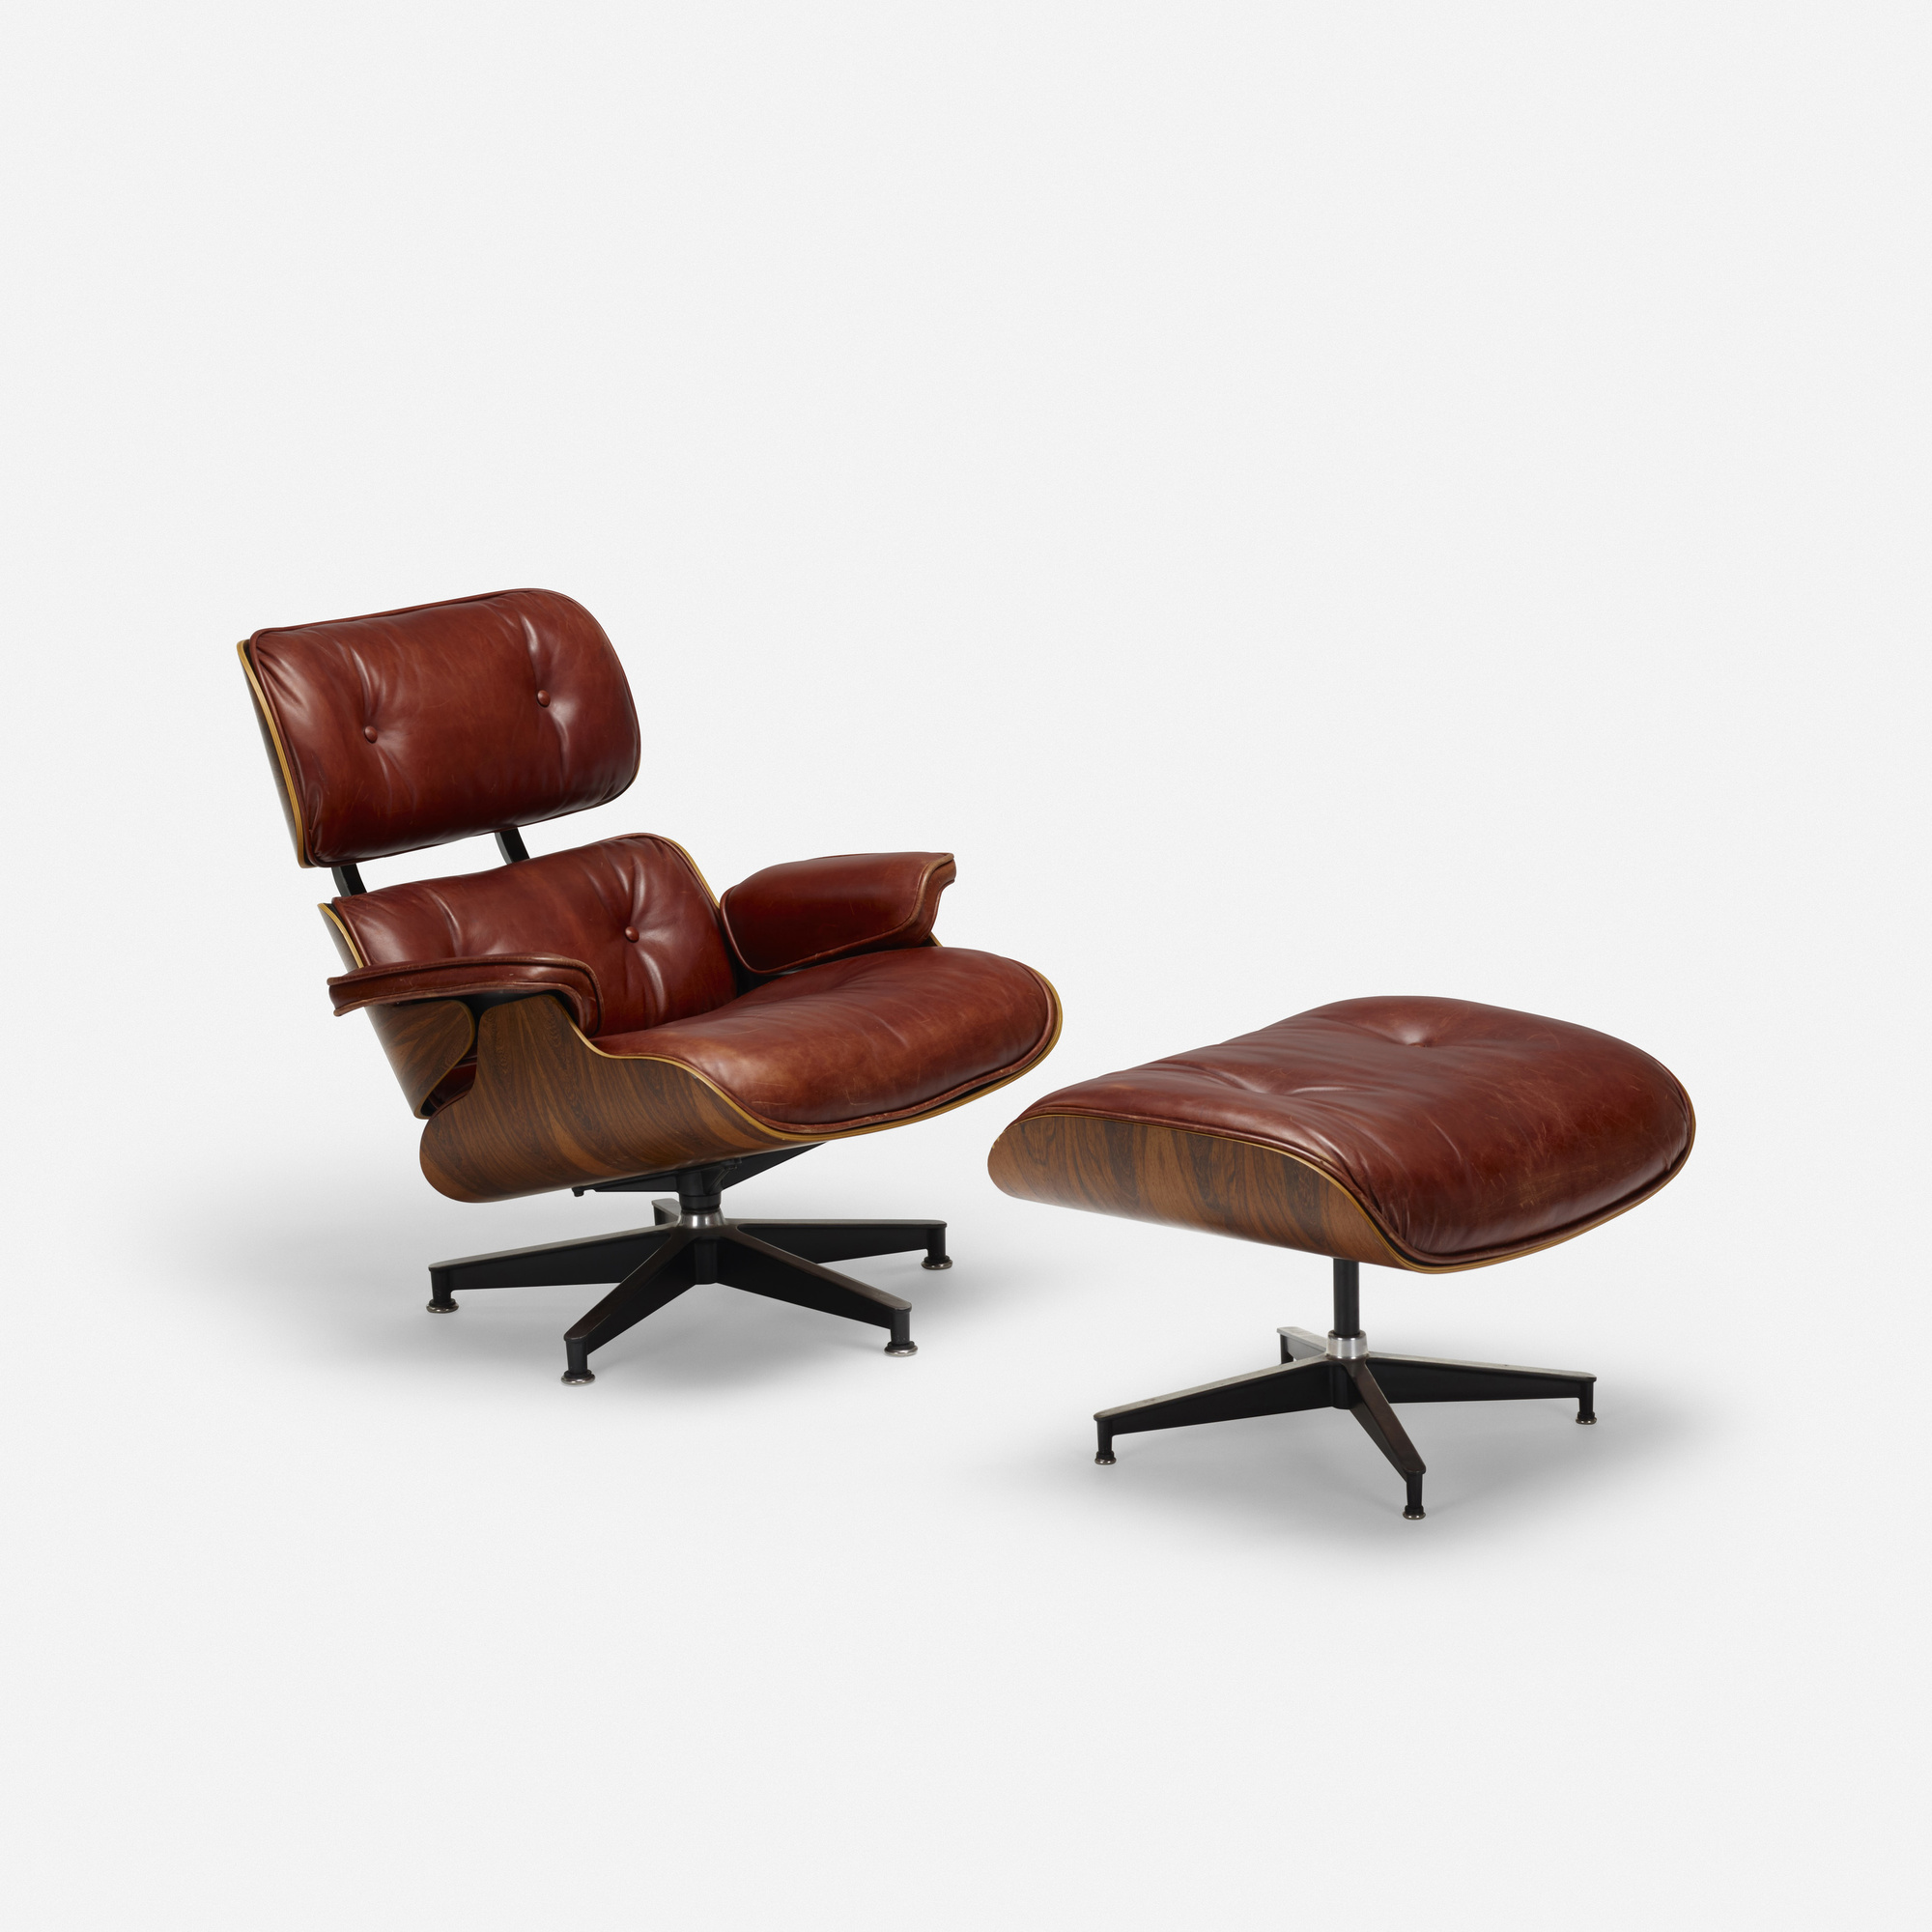 133: Charles And Ray Eames / Special Order 670 Lounge Chair And 671 Ottoman